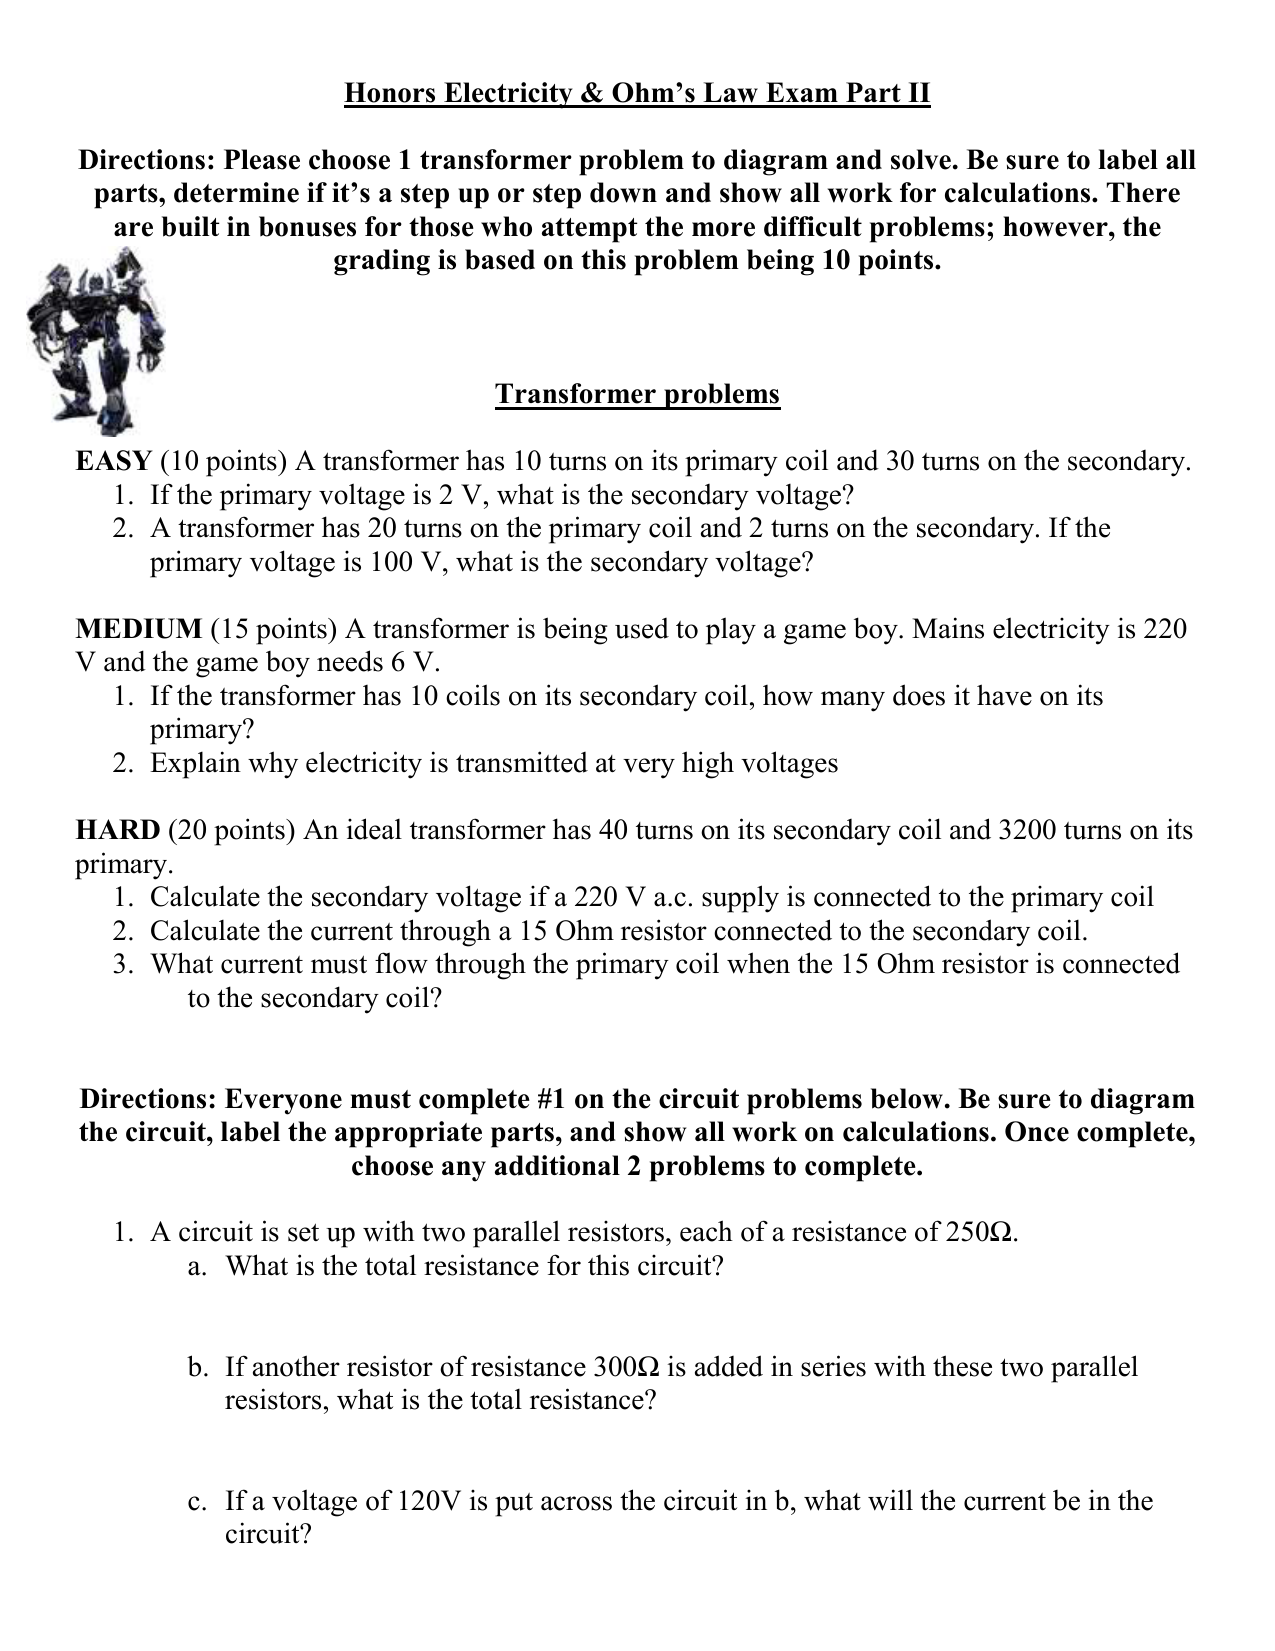 Transformer problems (Due Tuesday 25th March (PAYDAY